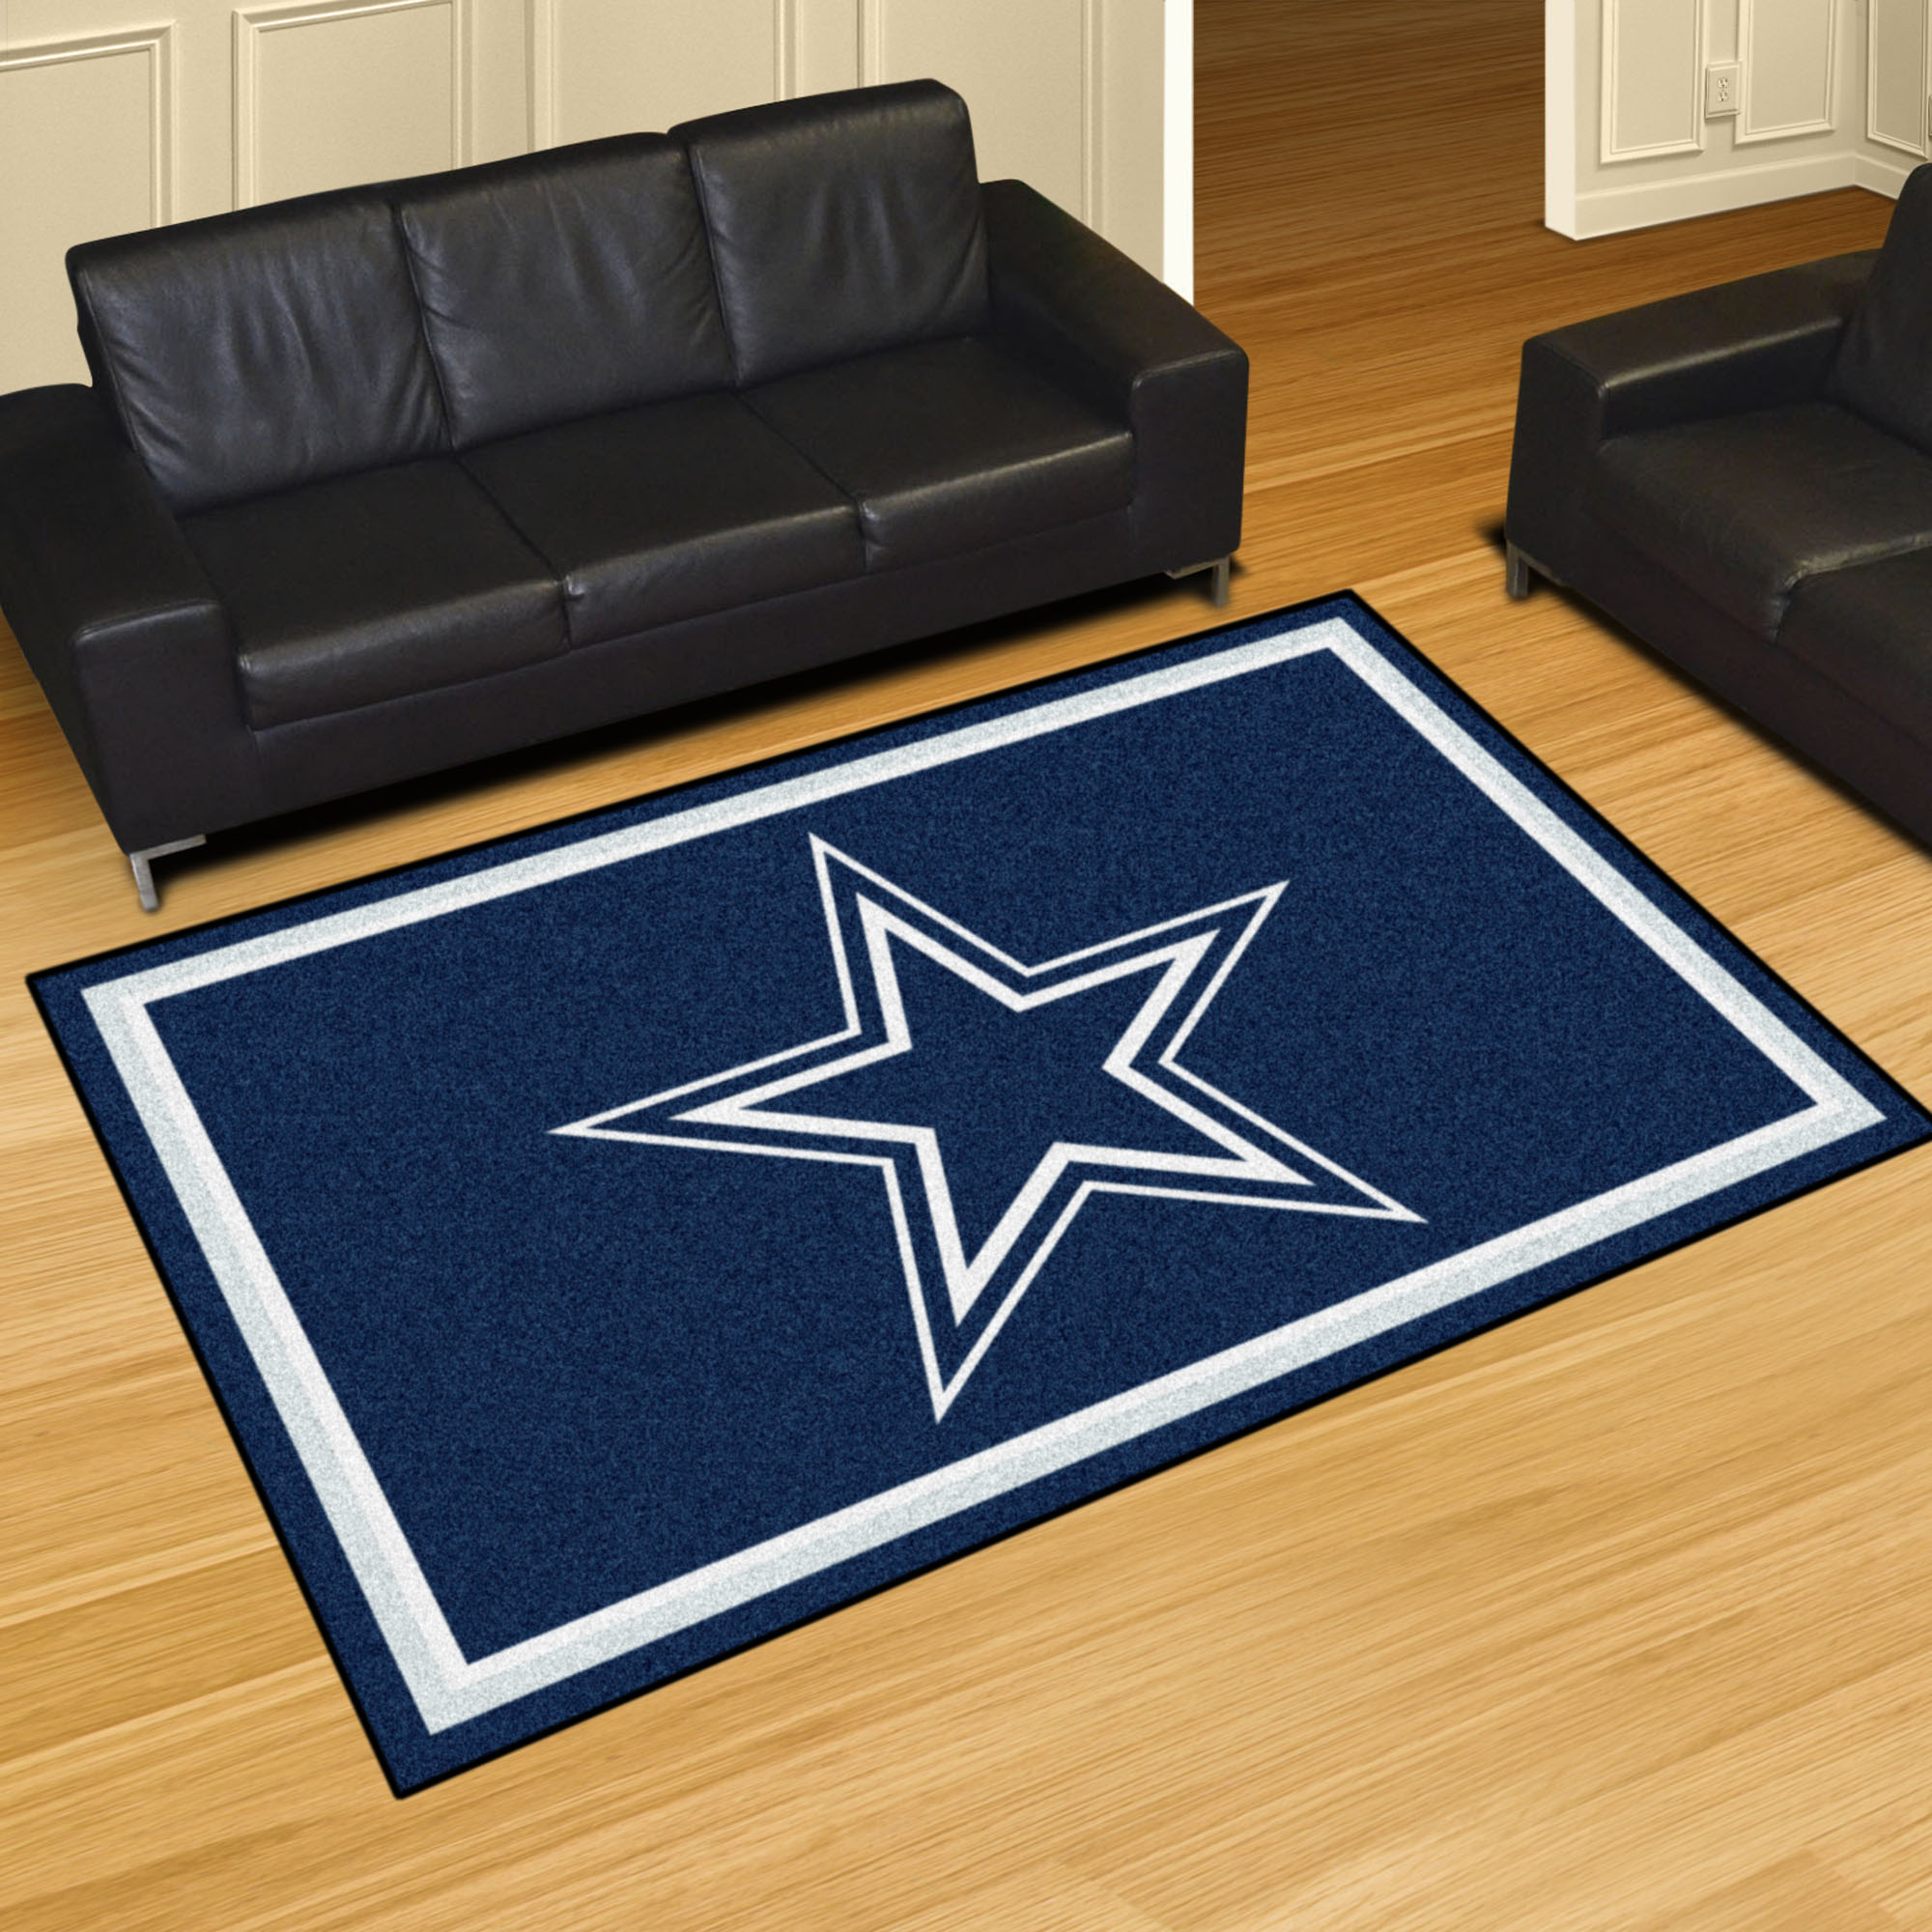 dallas cowboys rug dallas cowboys 5x8 area rug buy at khc sports 28861